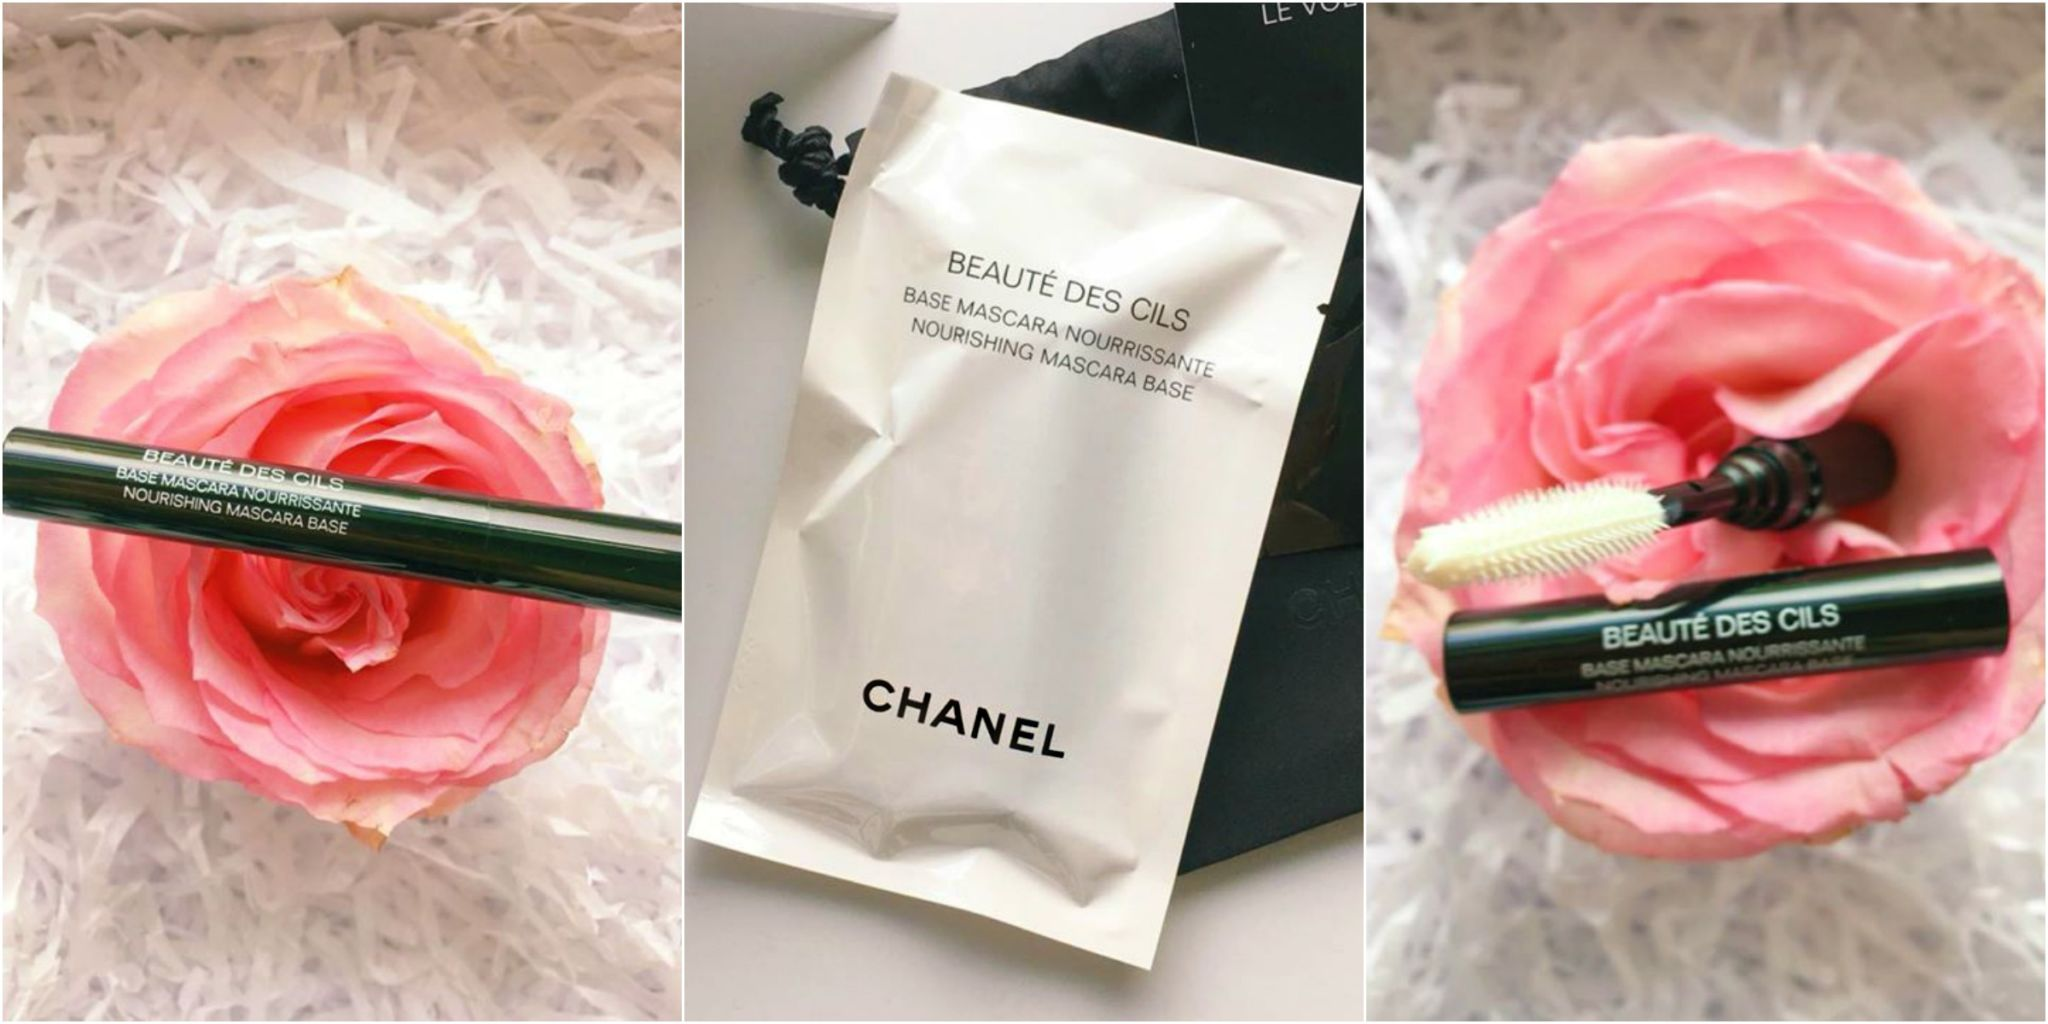 A sample Chanel mascara base